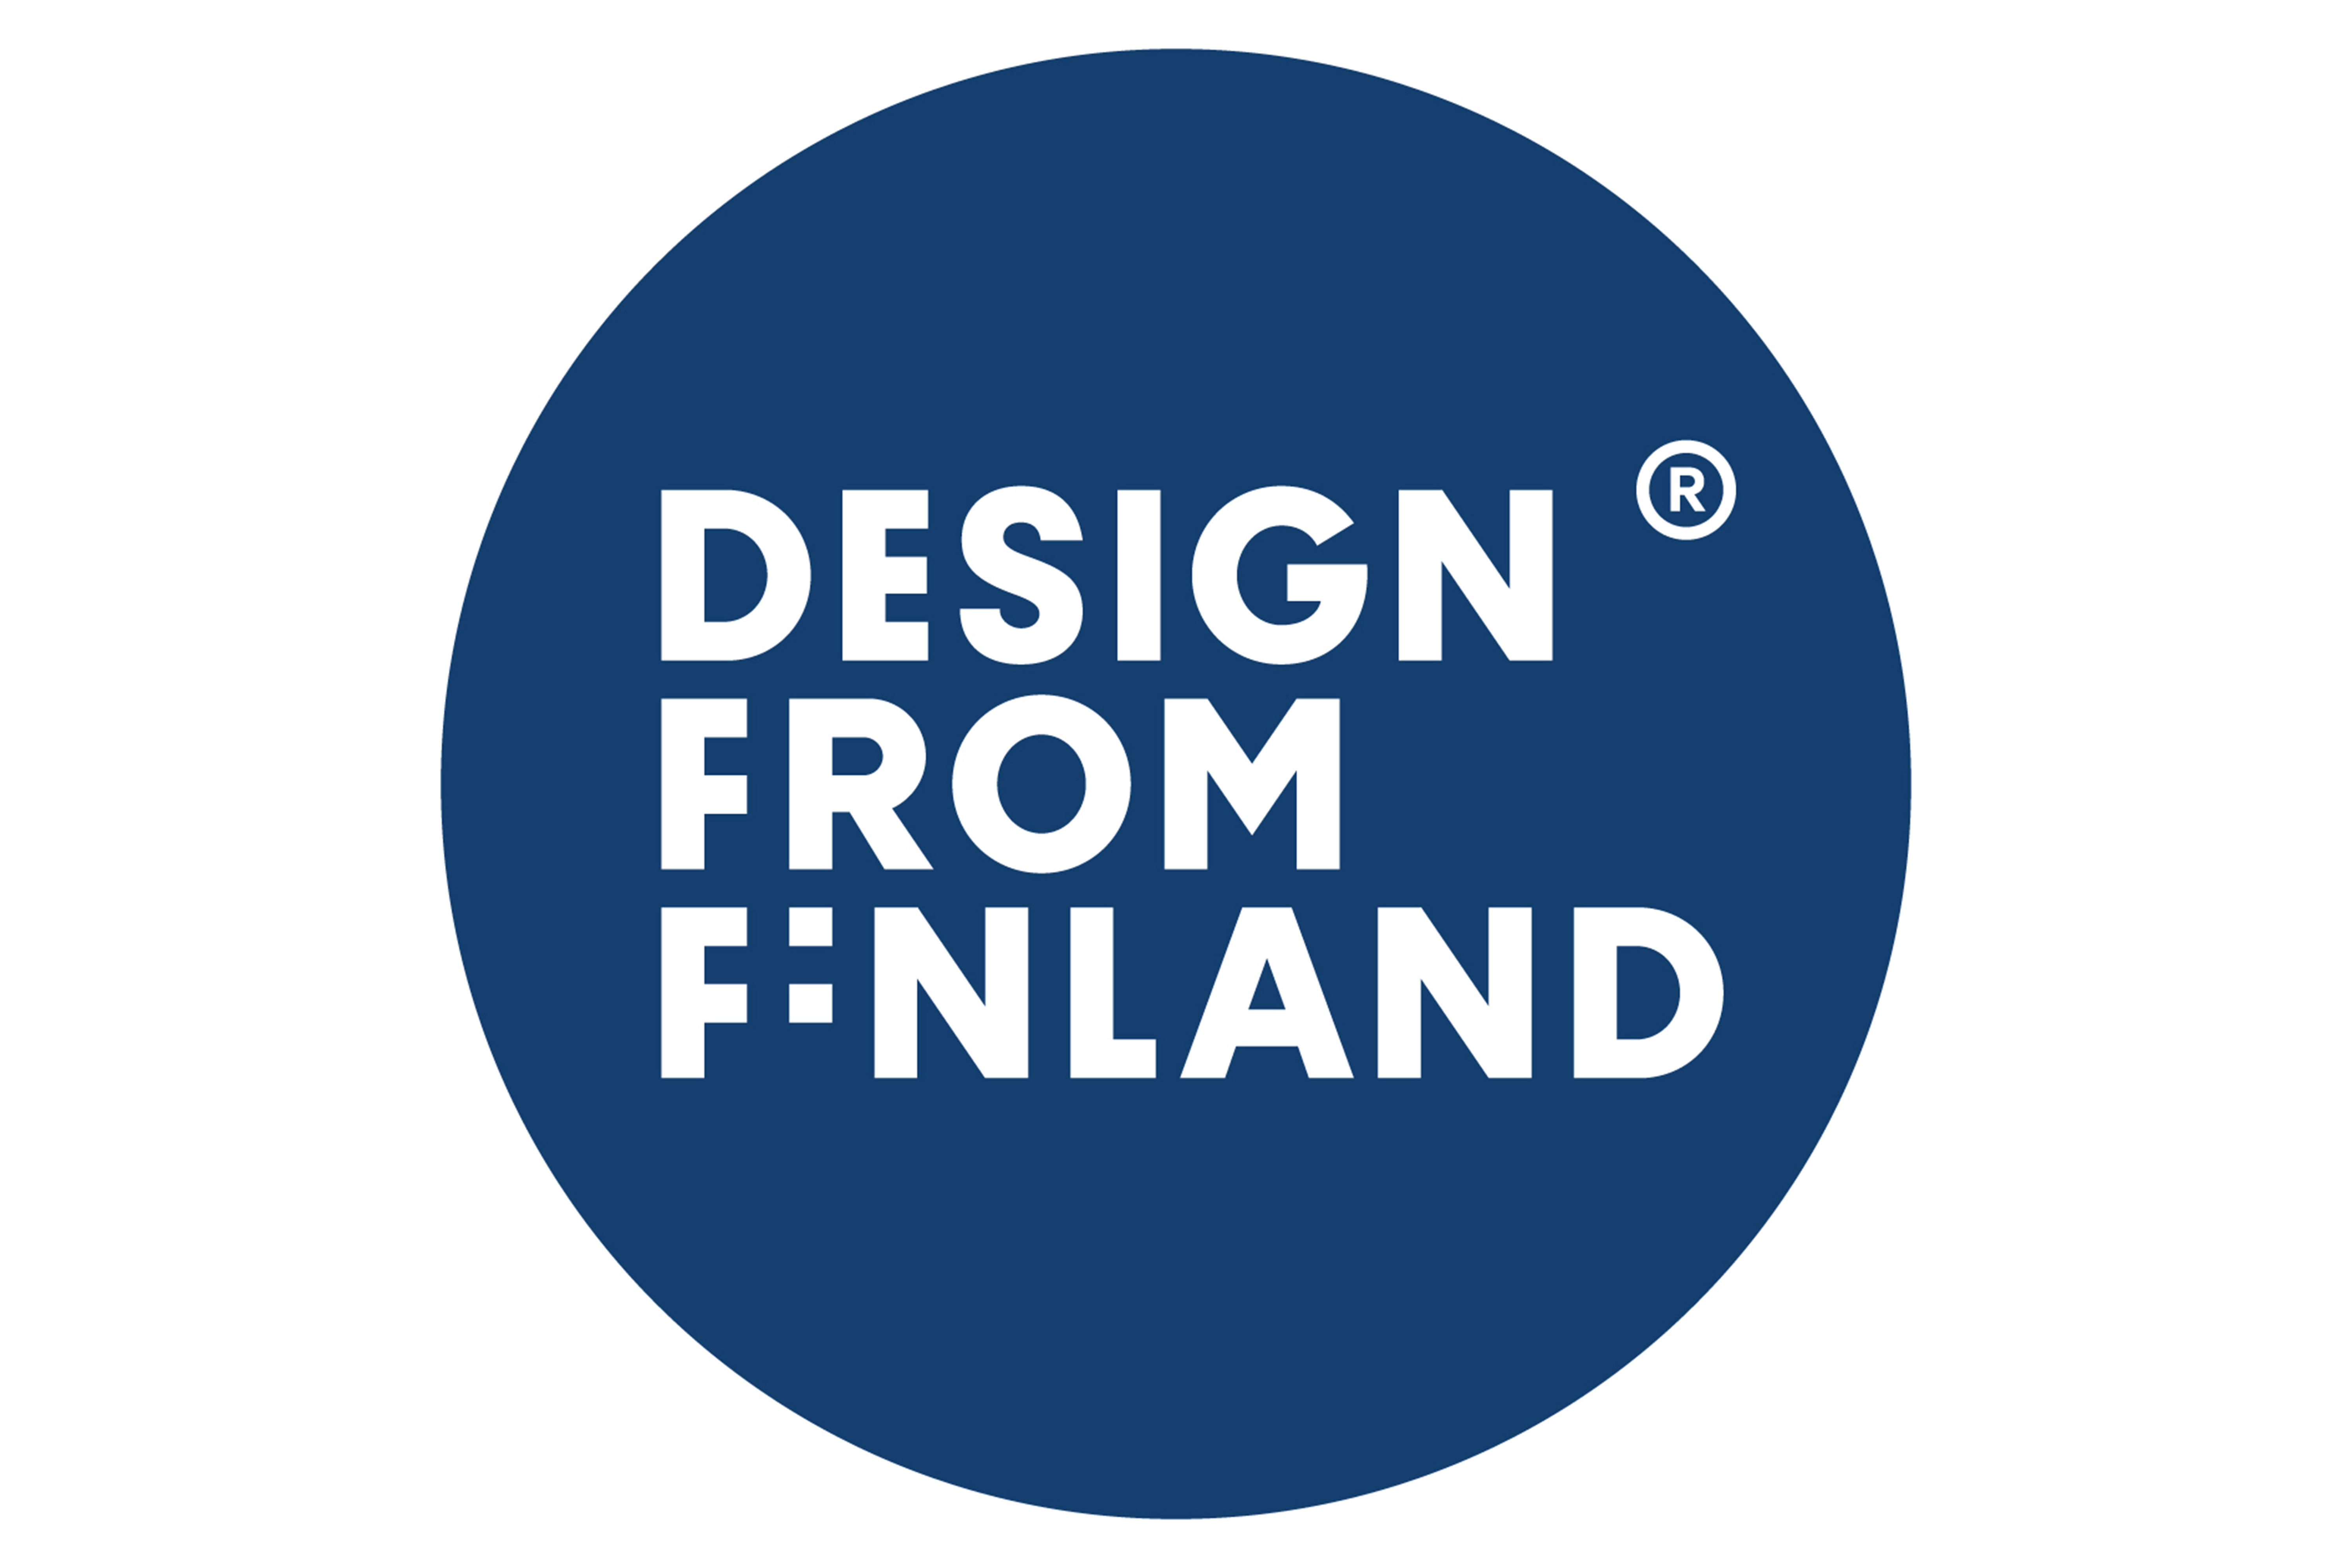 Novitalle Design from Finland -merkki